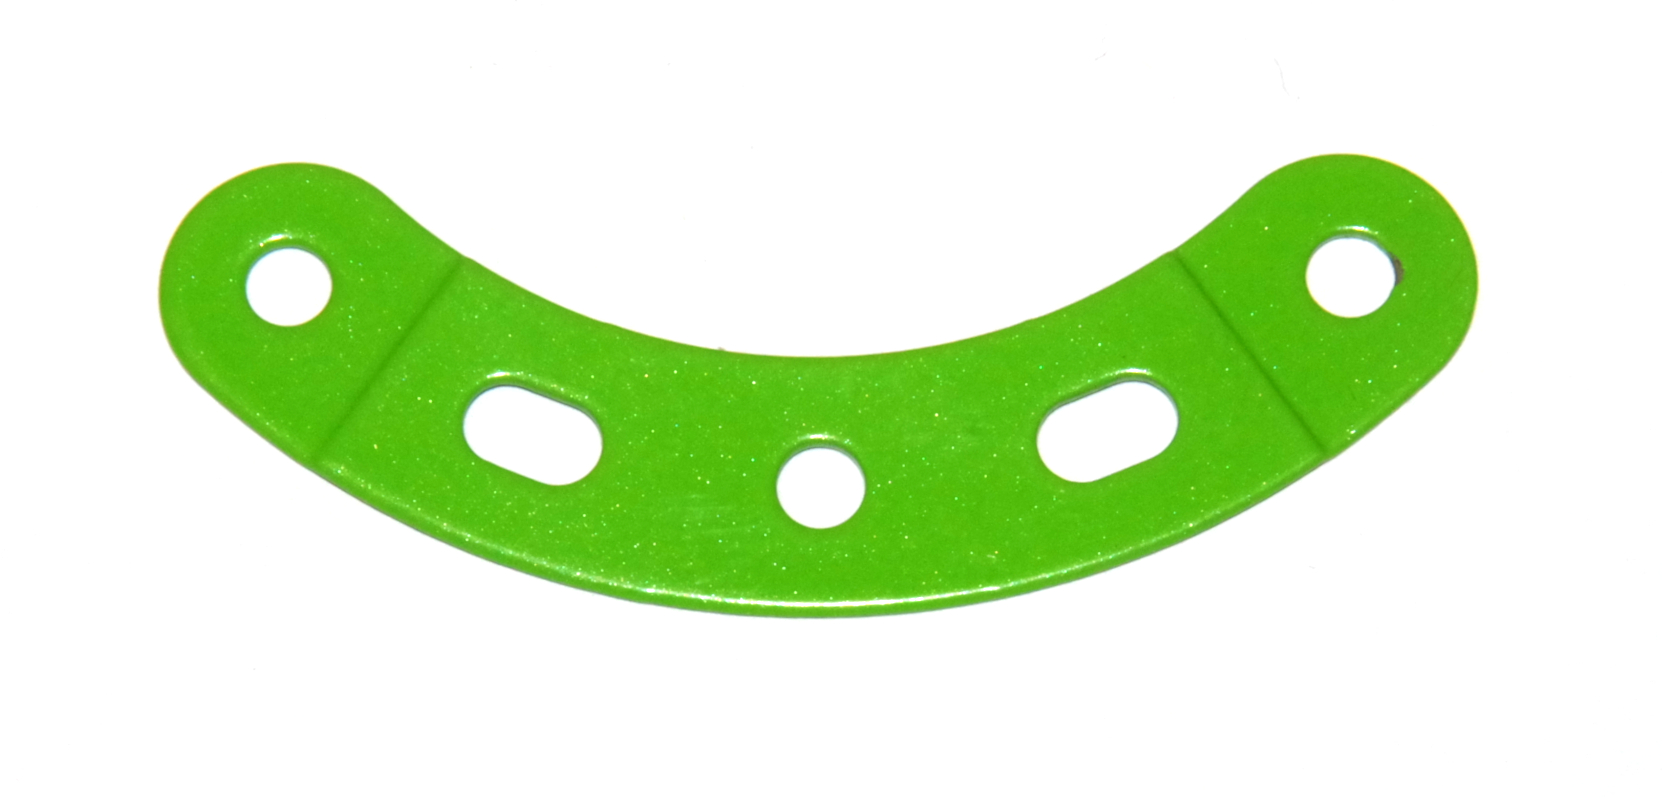 90a Curved Strip 3 Hole 2 Slot Fluorescent Green Original